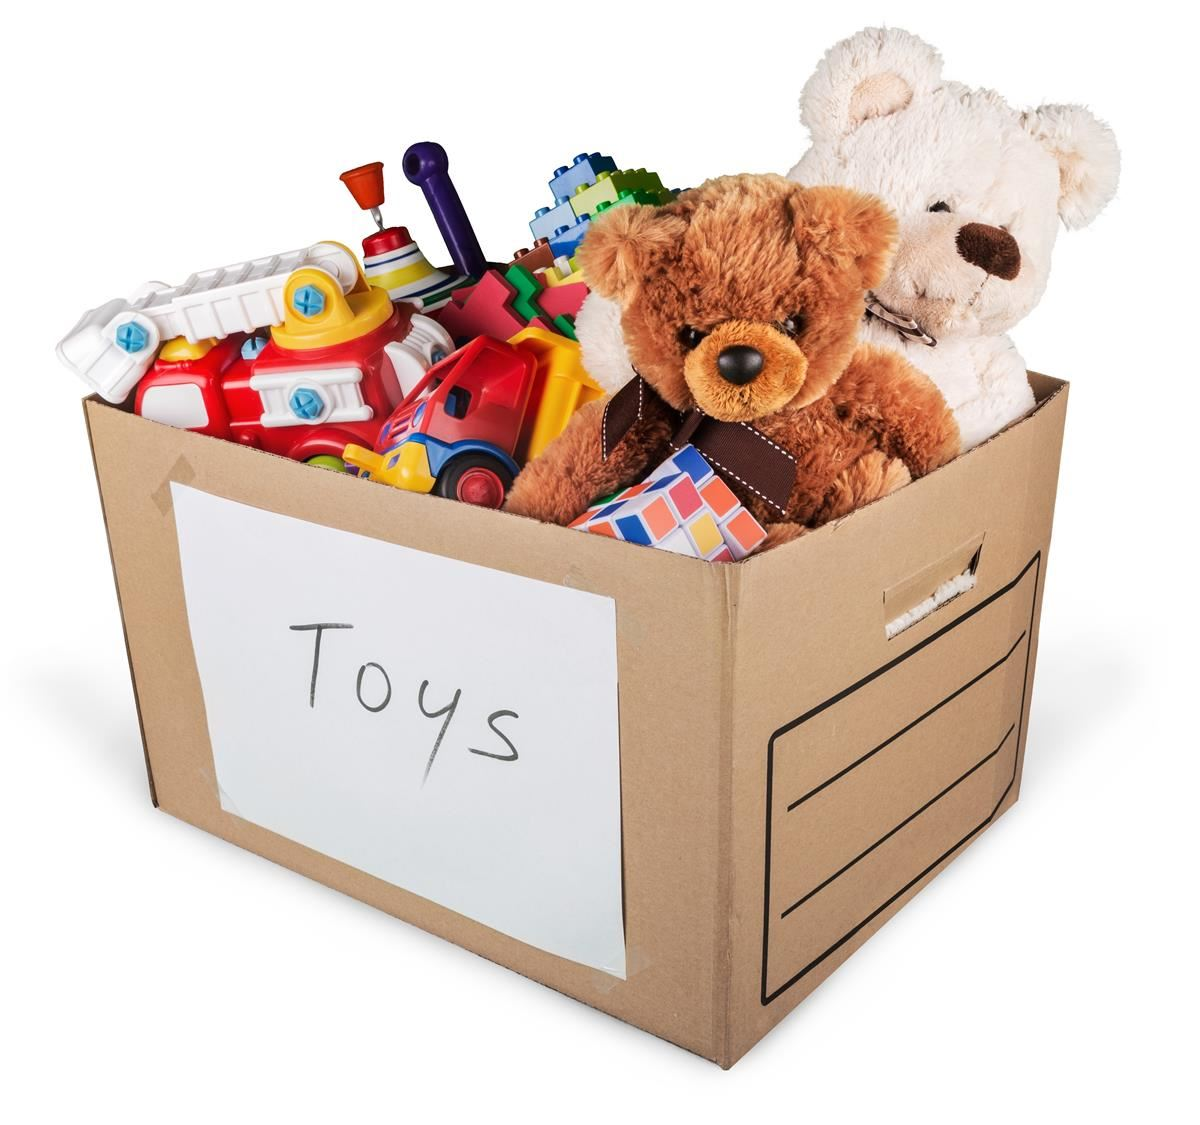 Box full of toy donations